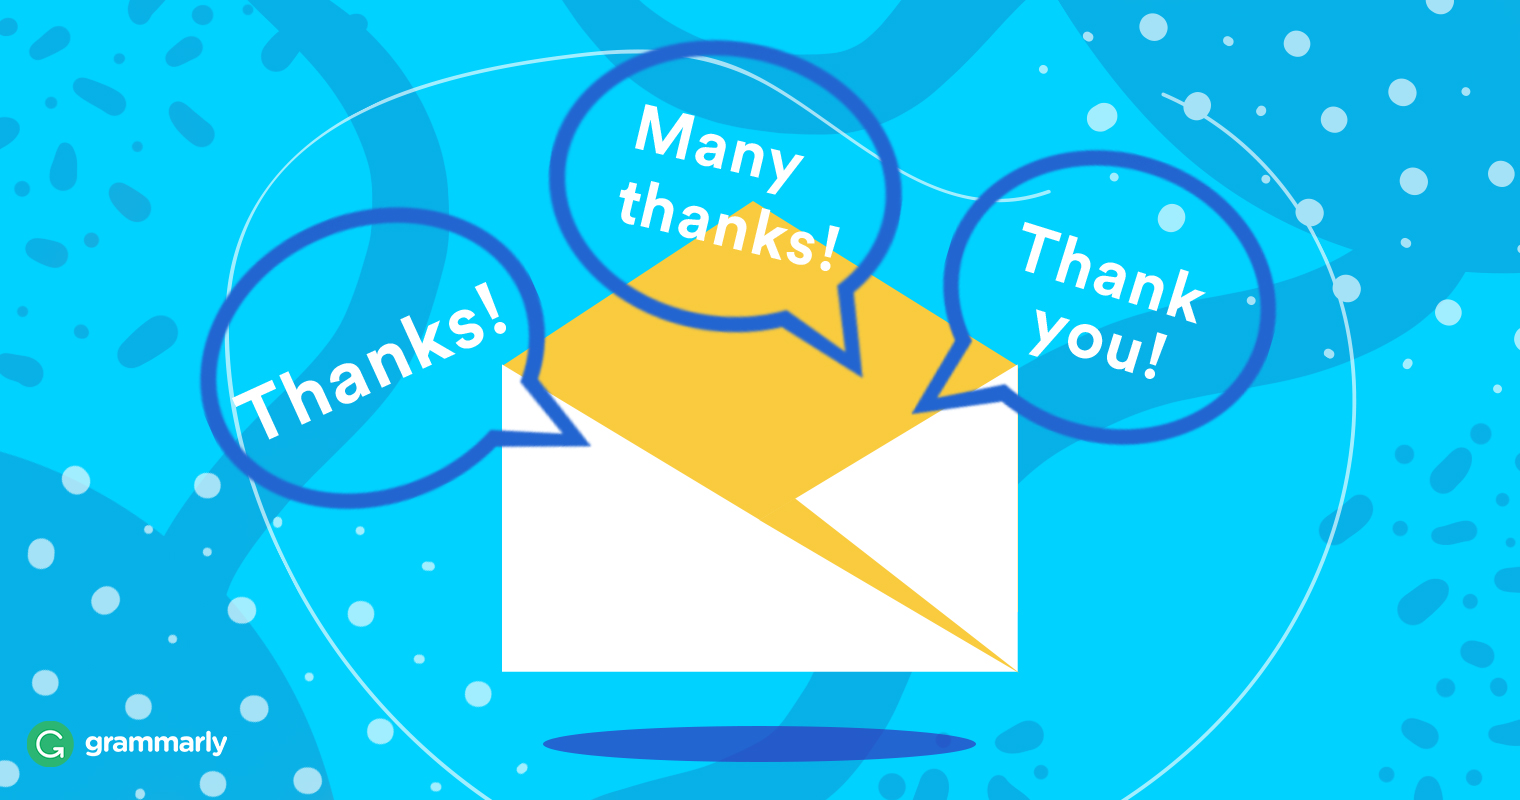 How to Write a Thank-You Email After an Interview, According to Experts